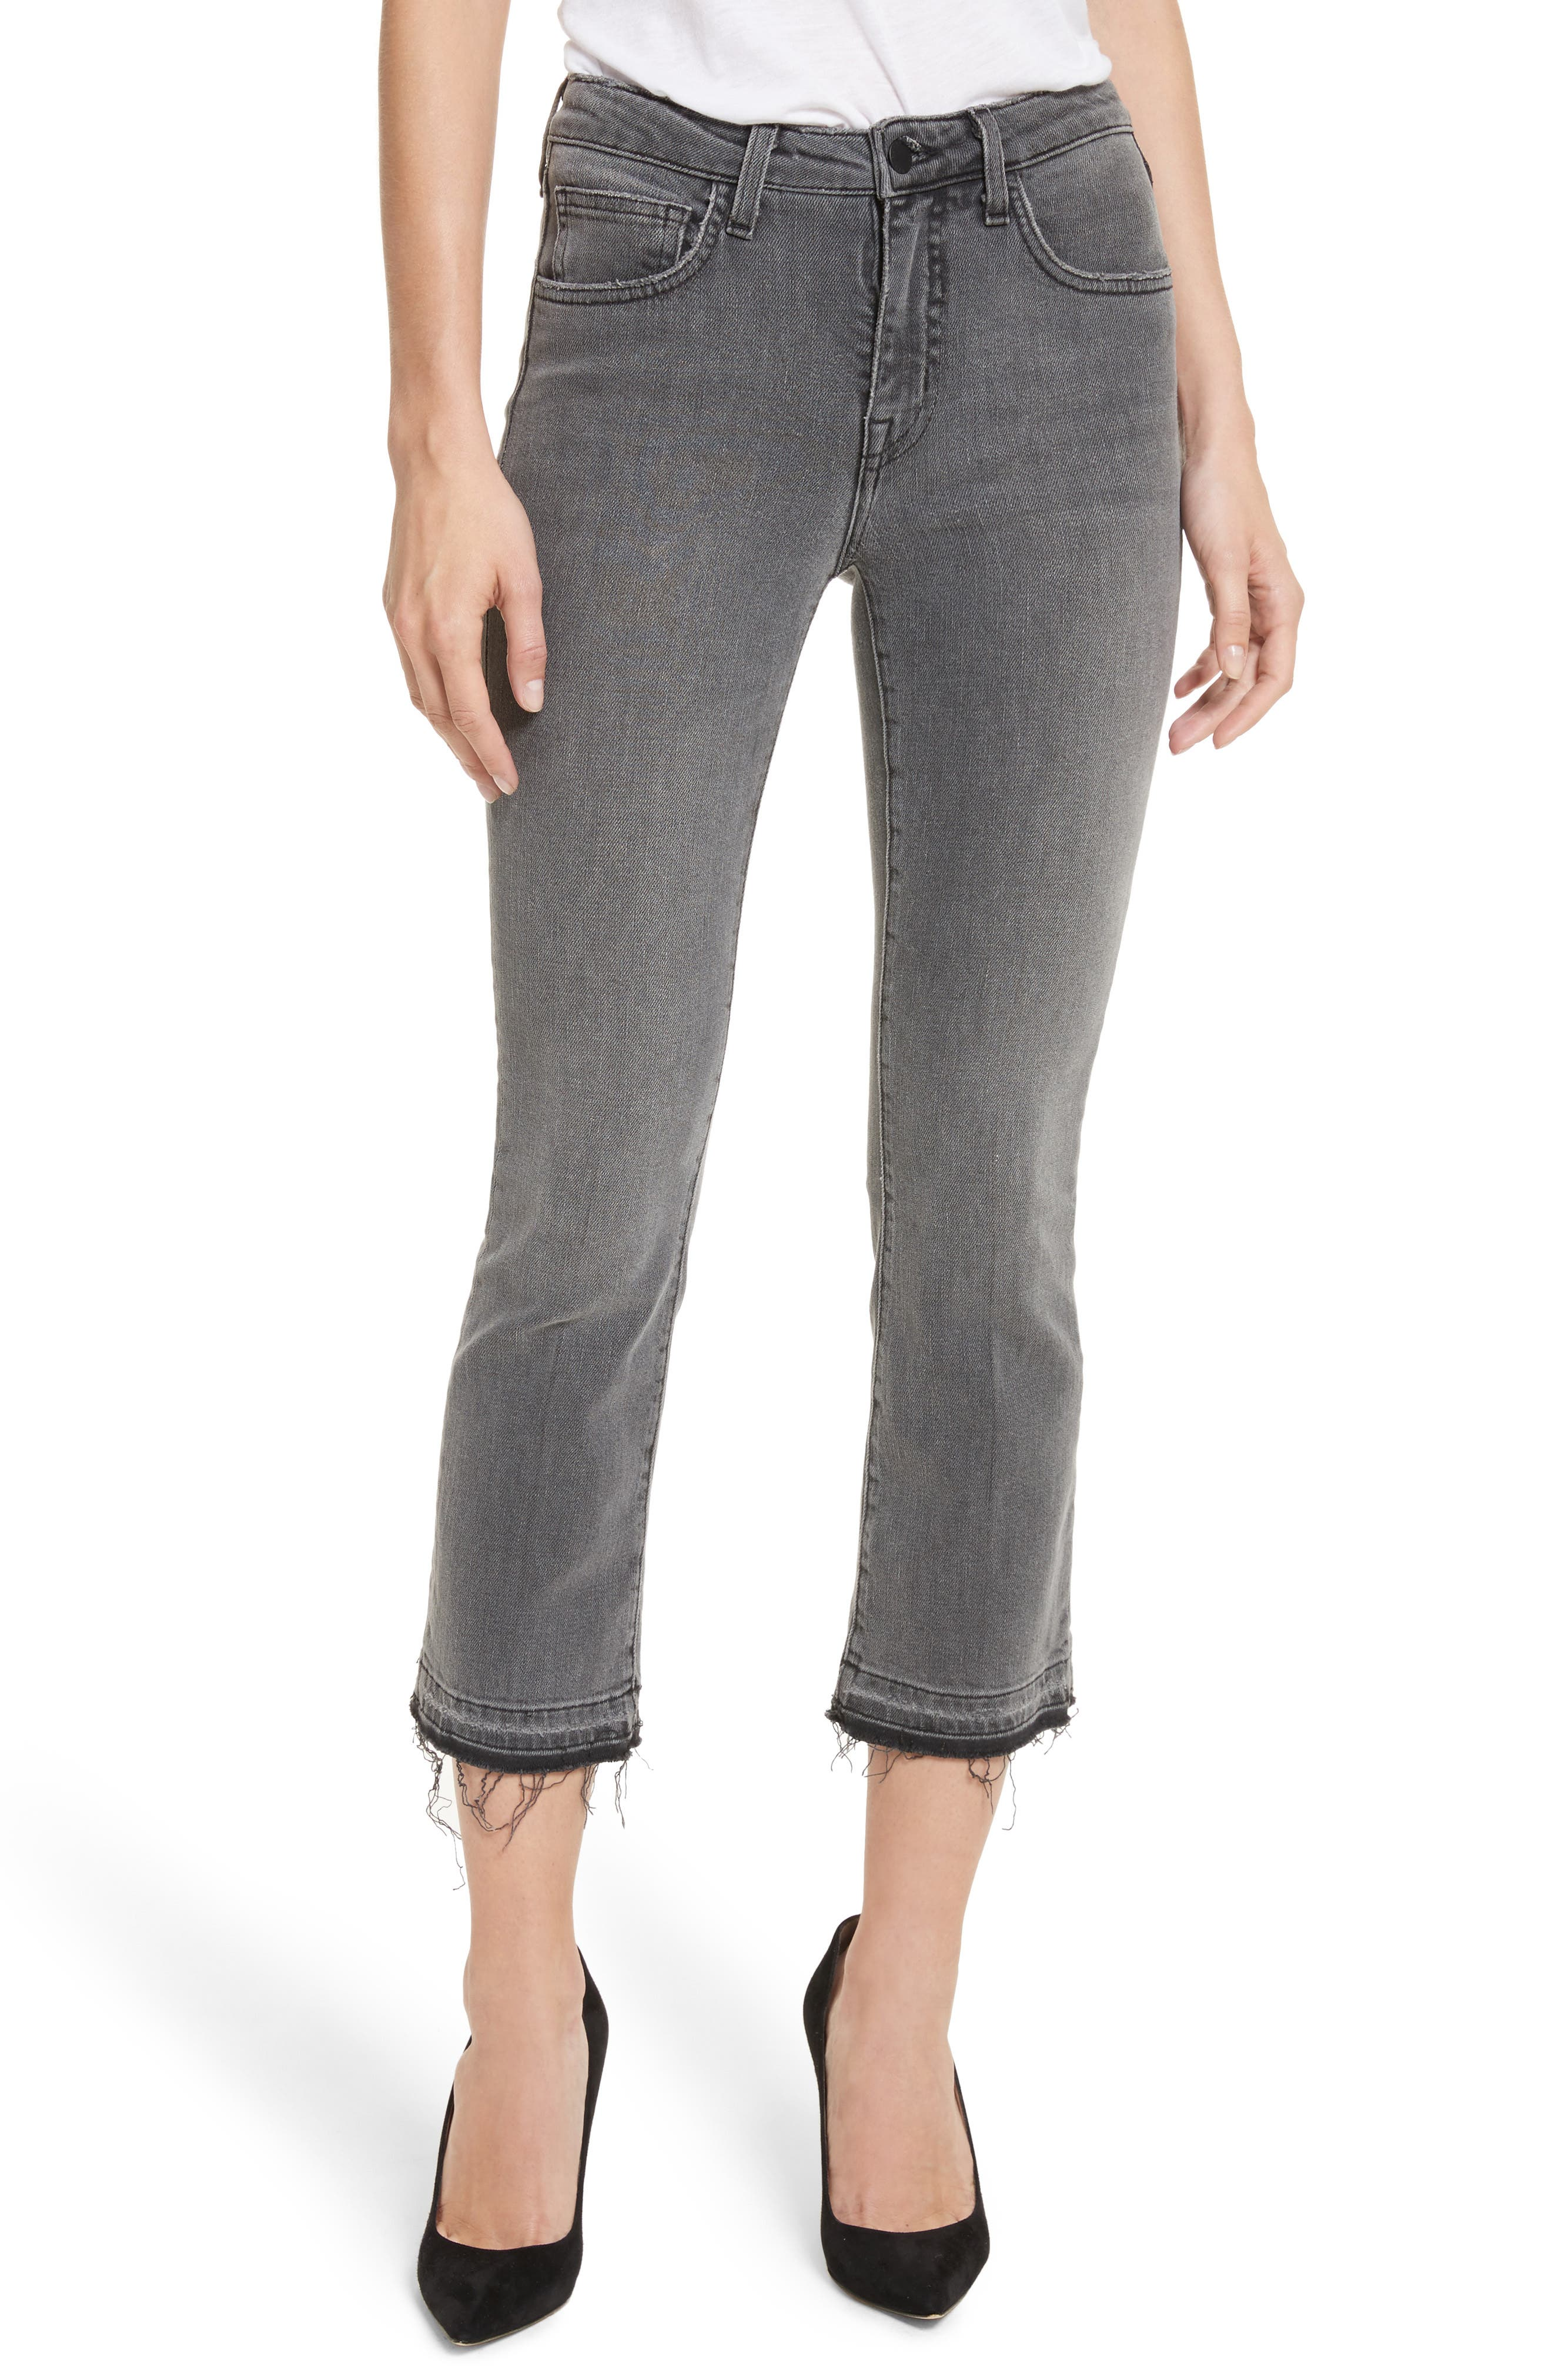 L'AGENCE Serena High Waist Crop Flare Jeans